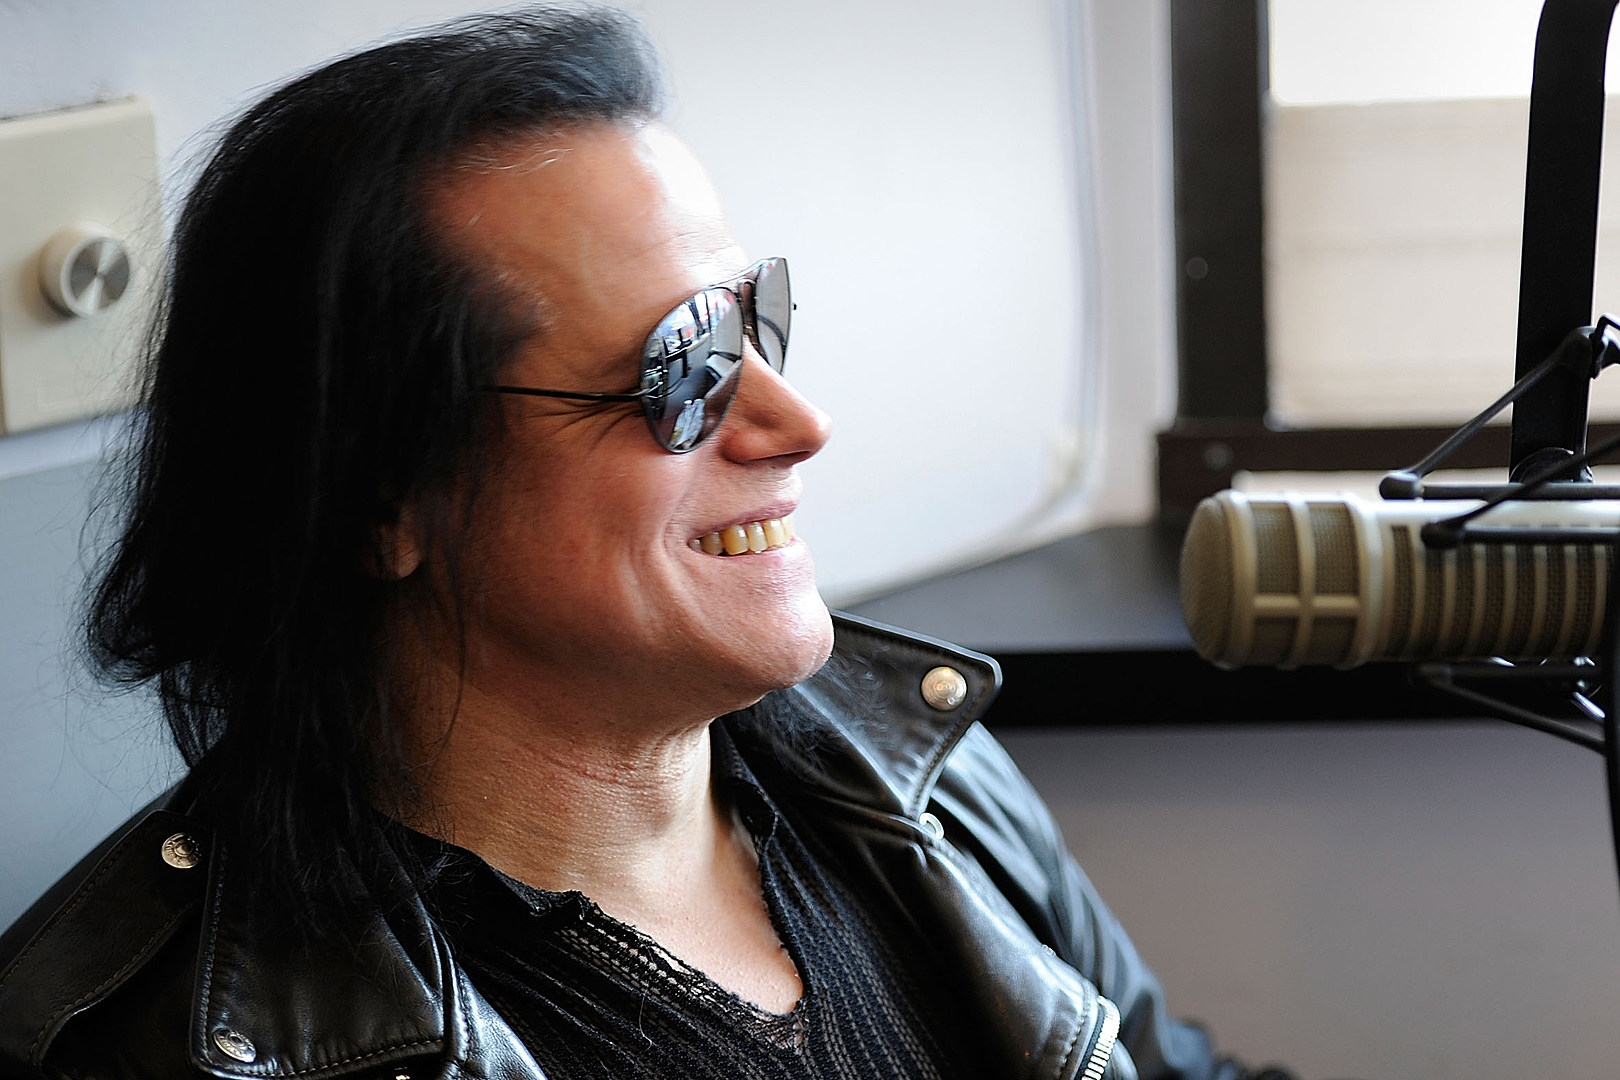 Glenn Danzig Channels Elvis Presley's Swagger on 'One Night' Cover